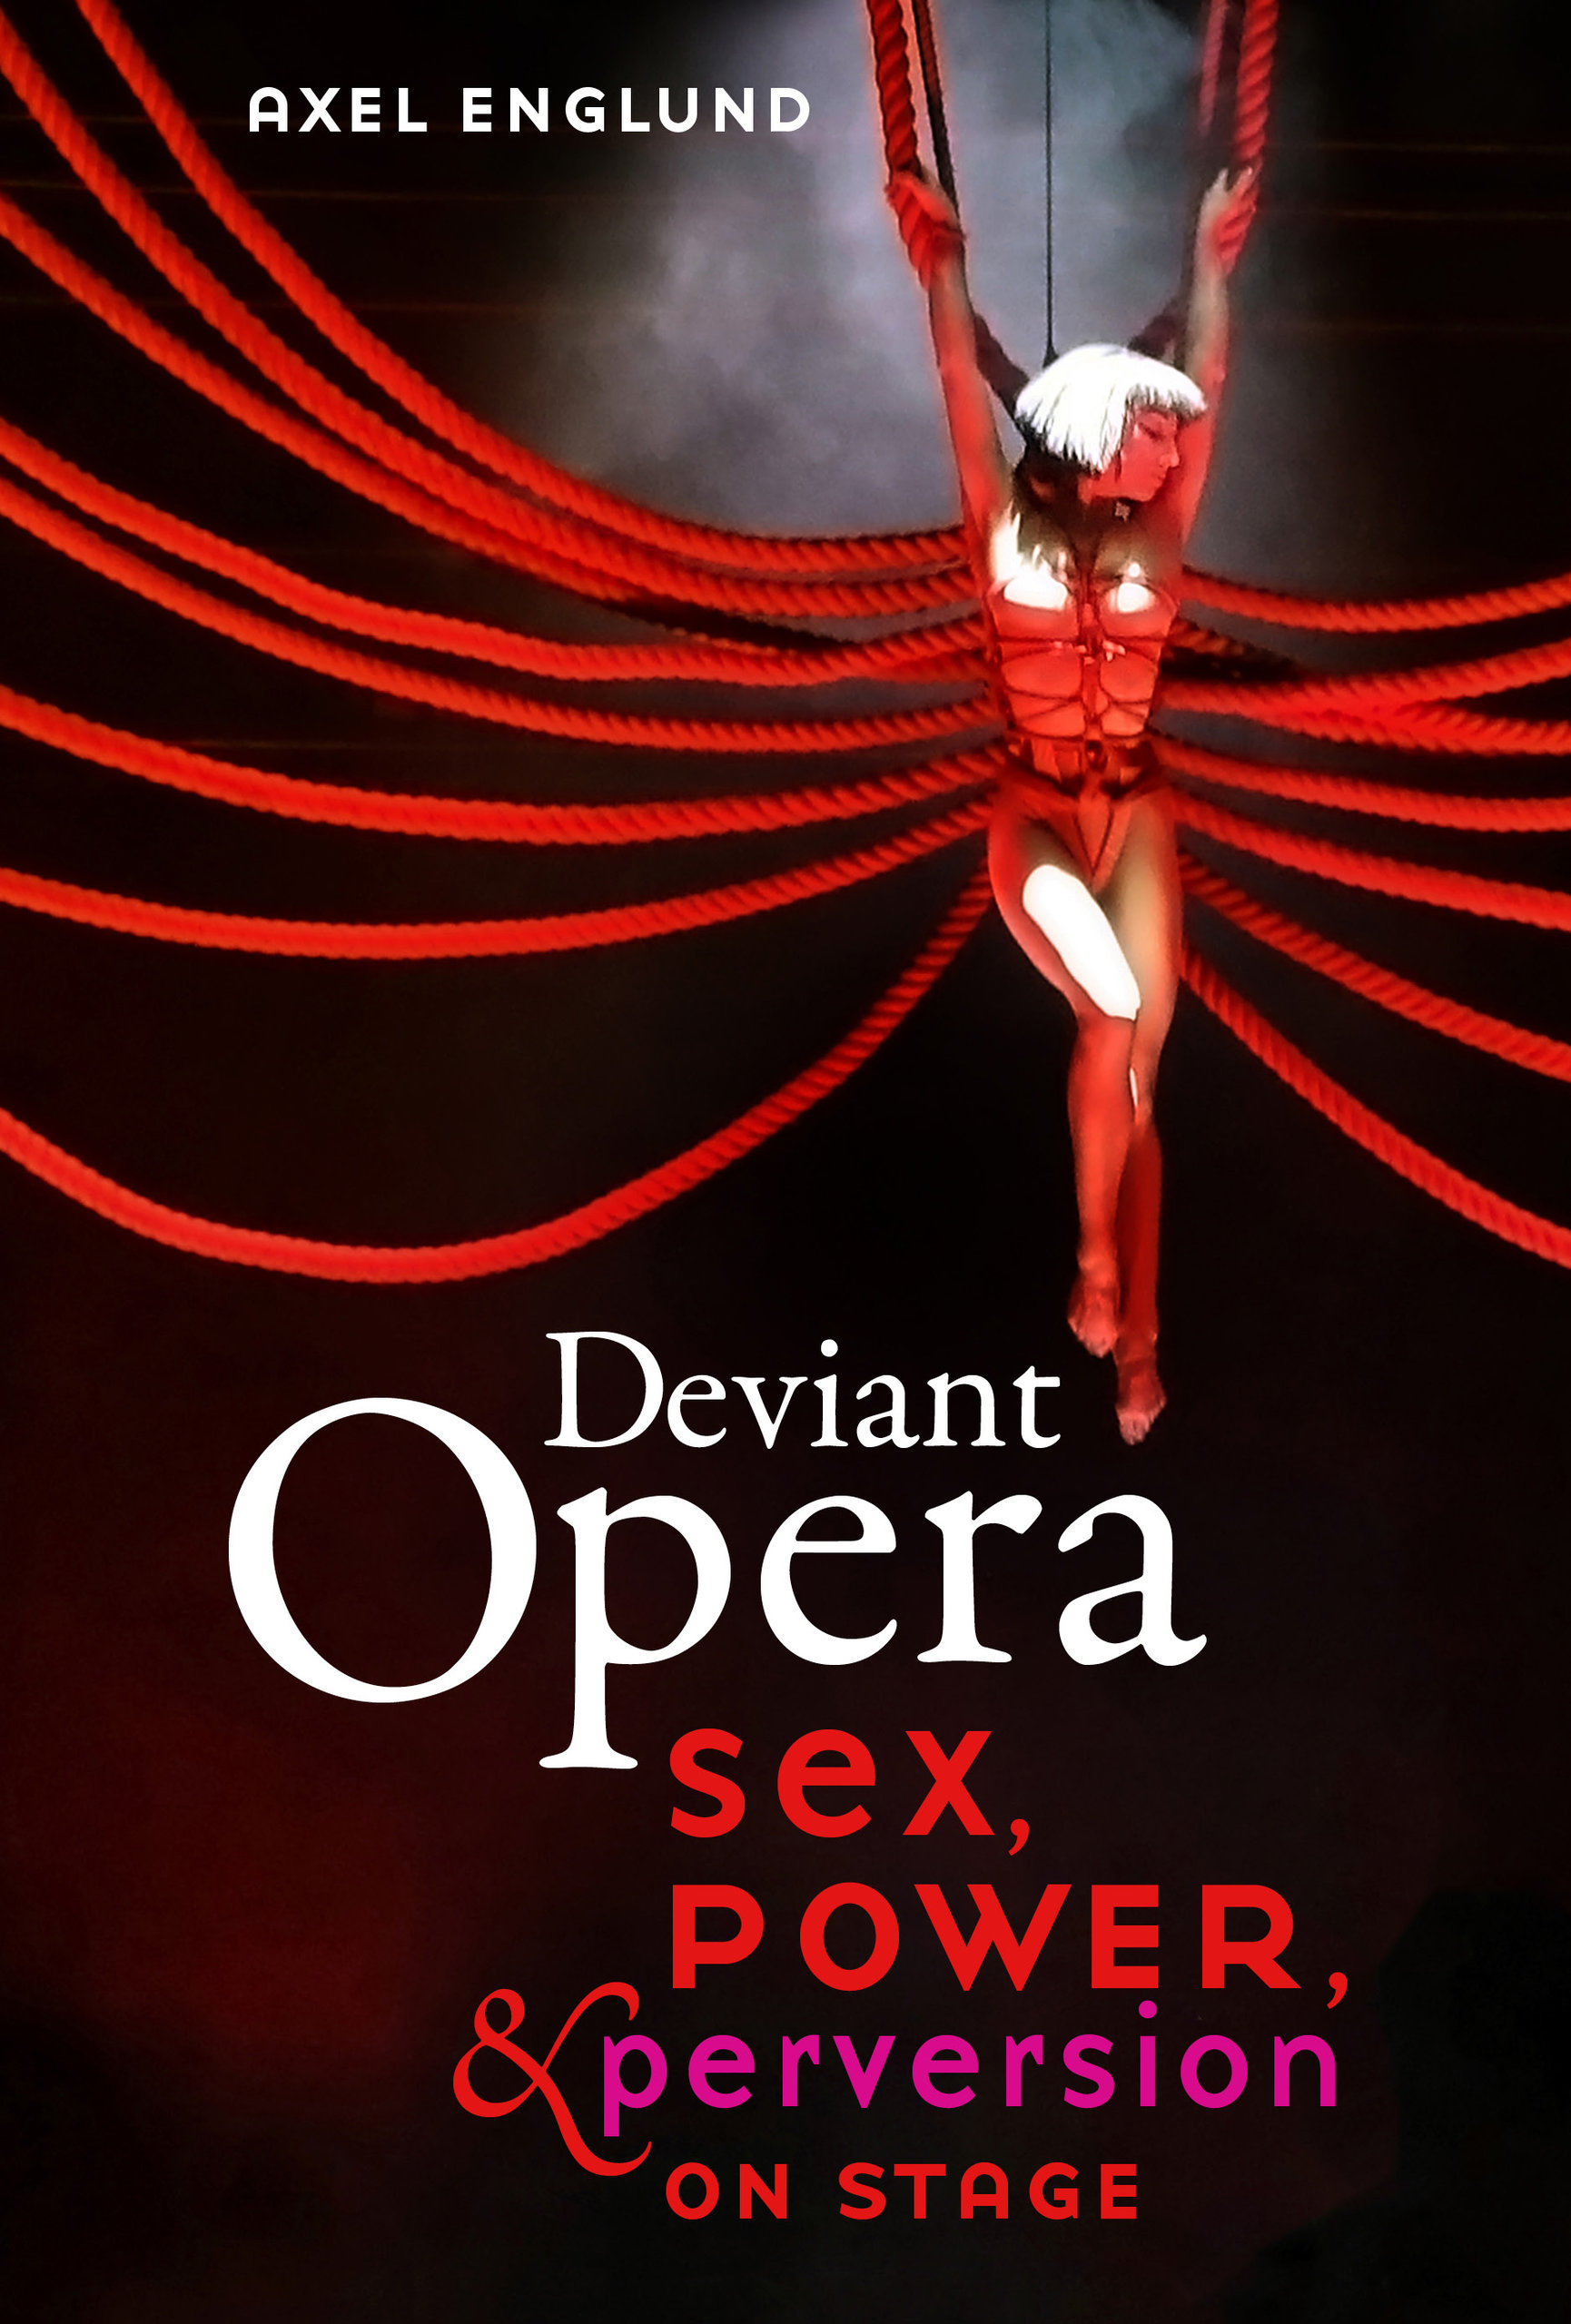 Deviant Opera by Axel Englund - Hardcover - University of California Press